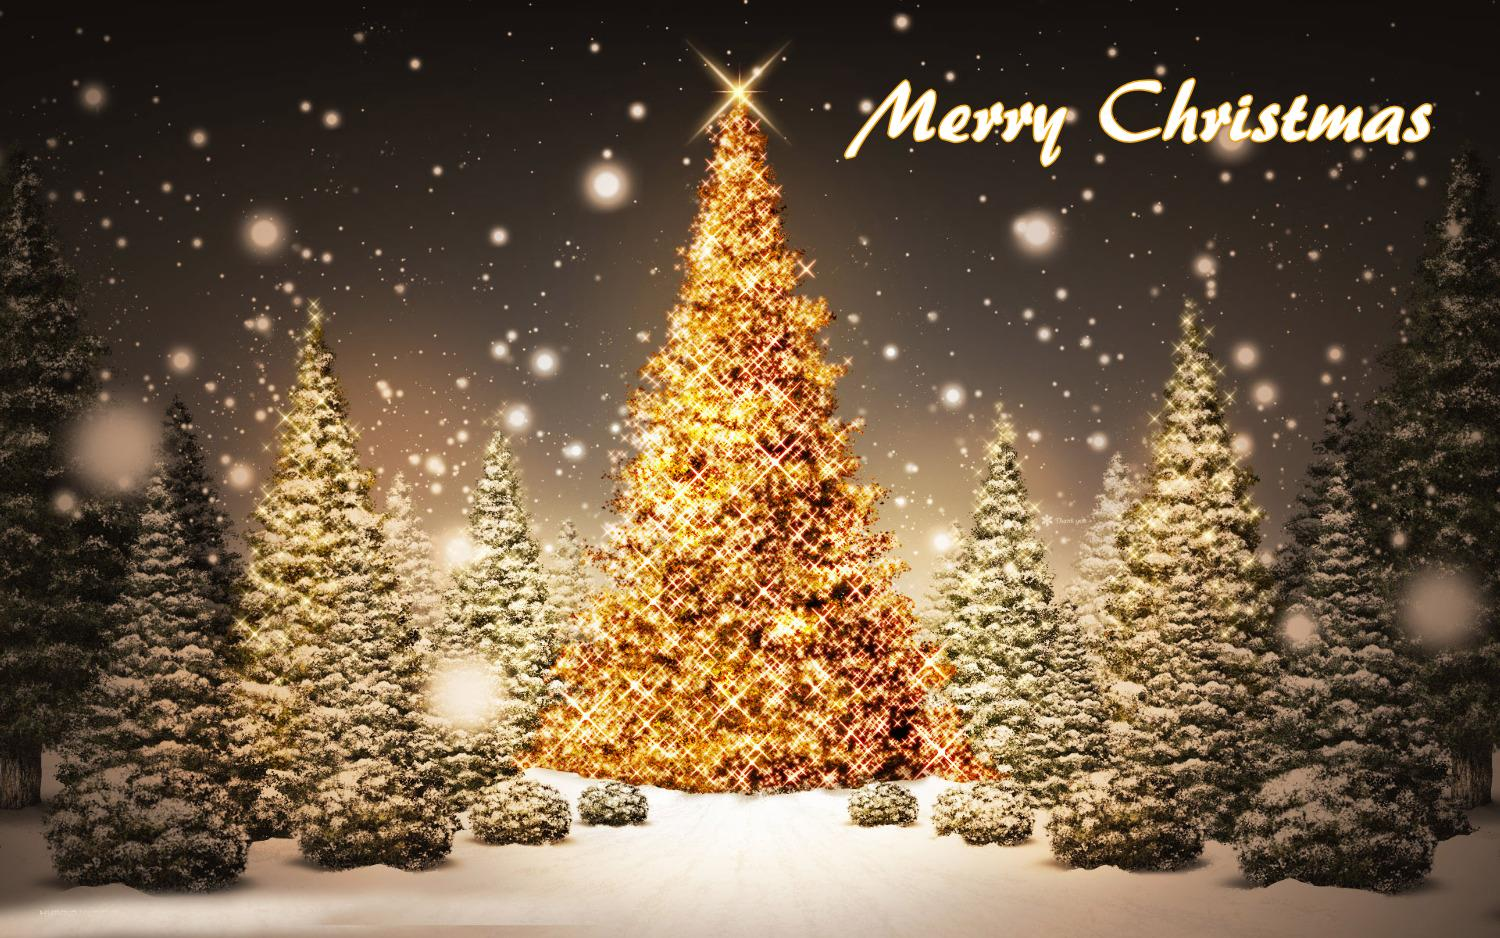 Merry Christmas Images Free Download.Merry Christmas Tree Free Download Wallpaper 2018